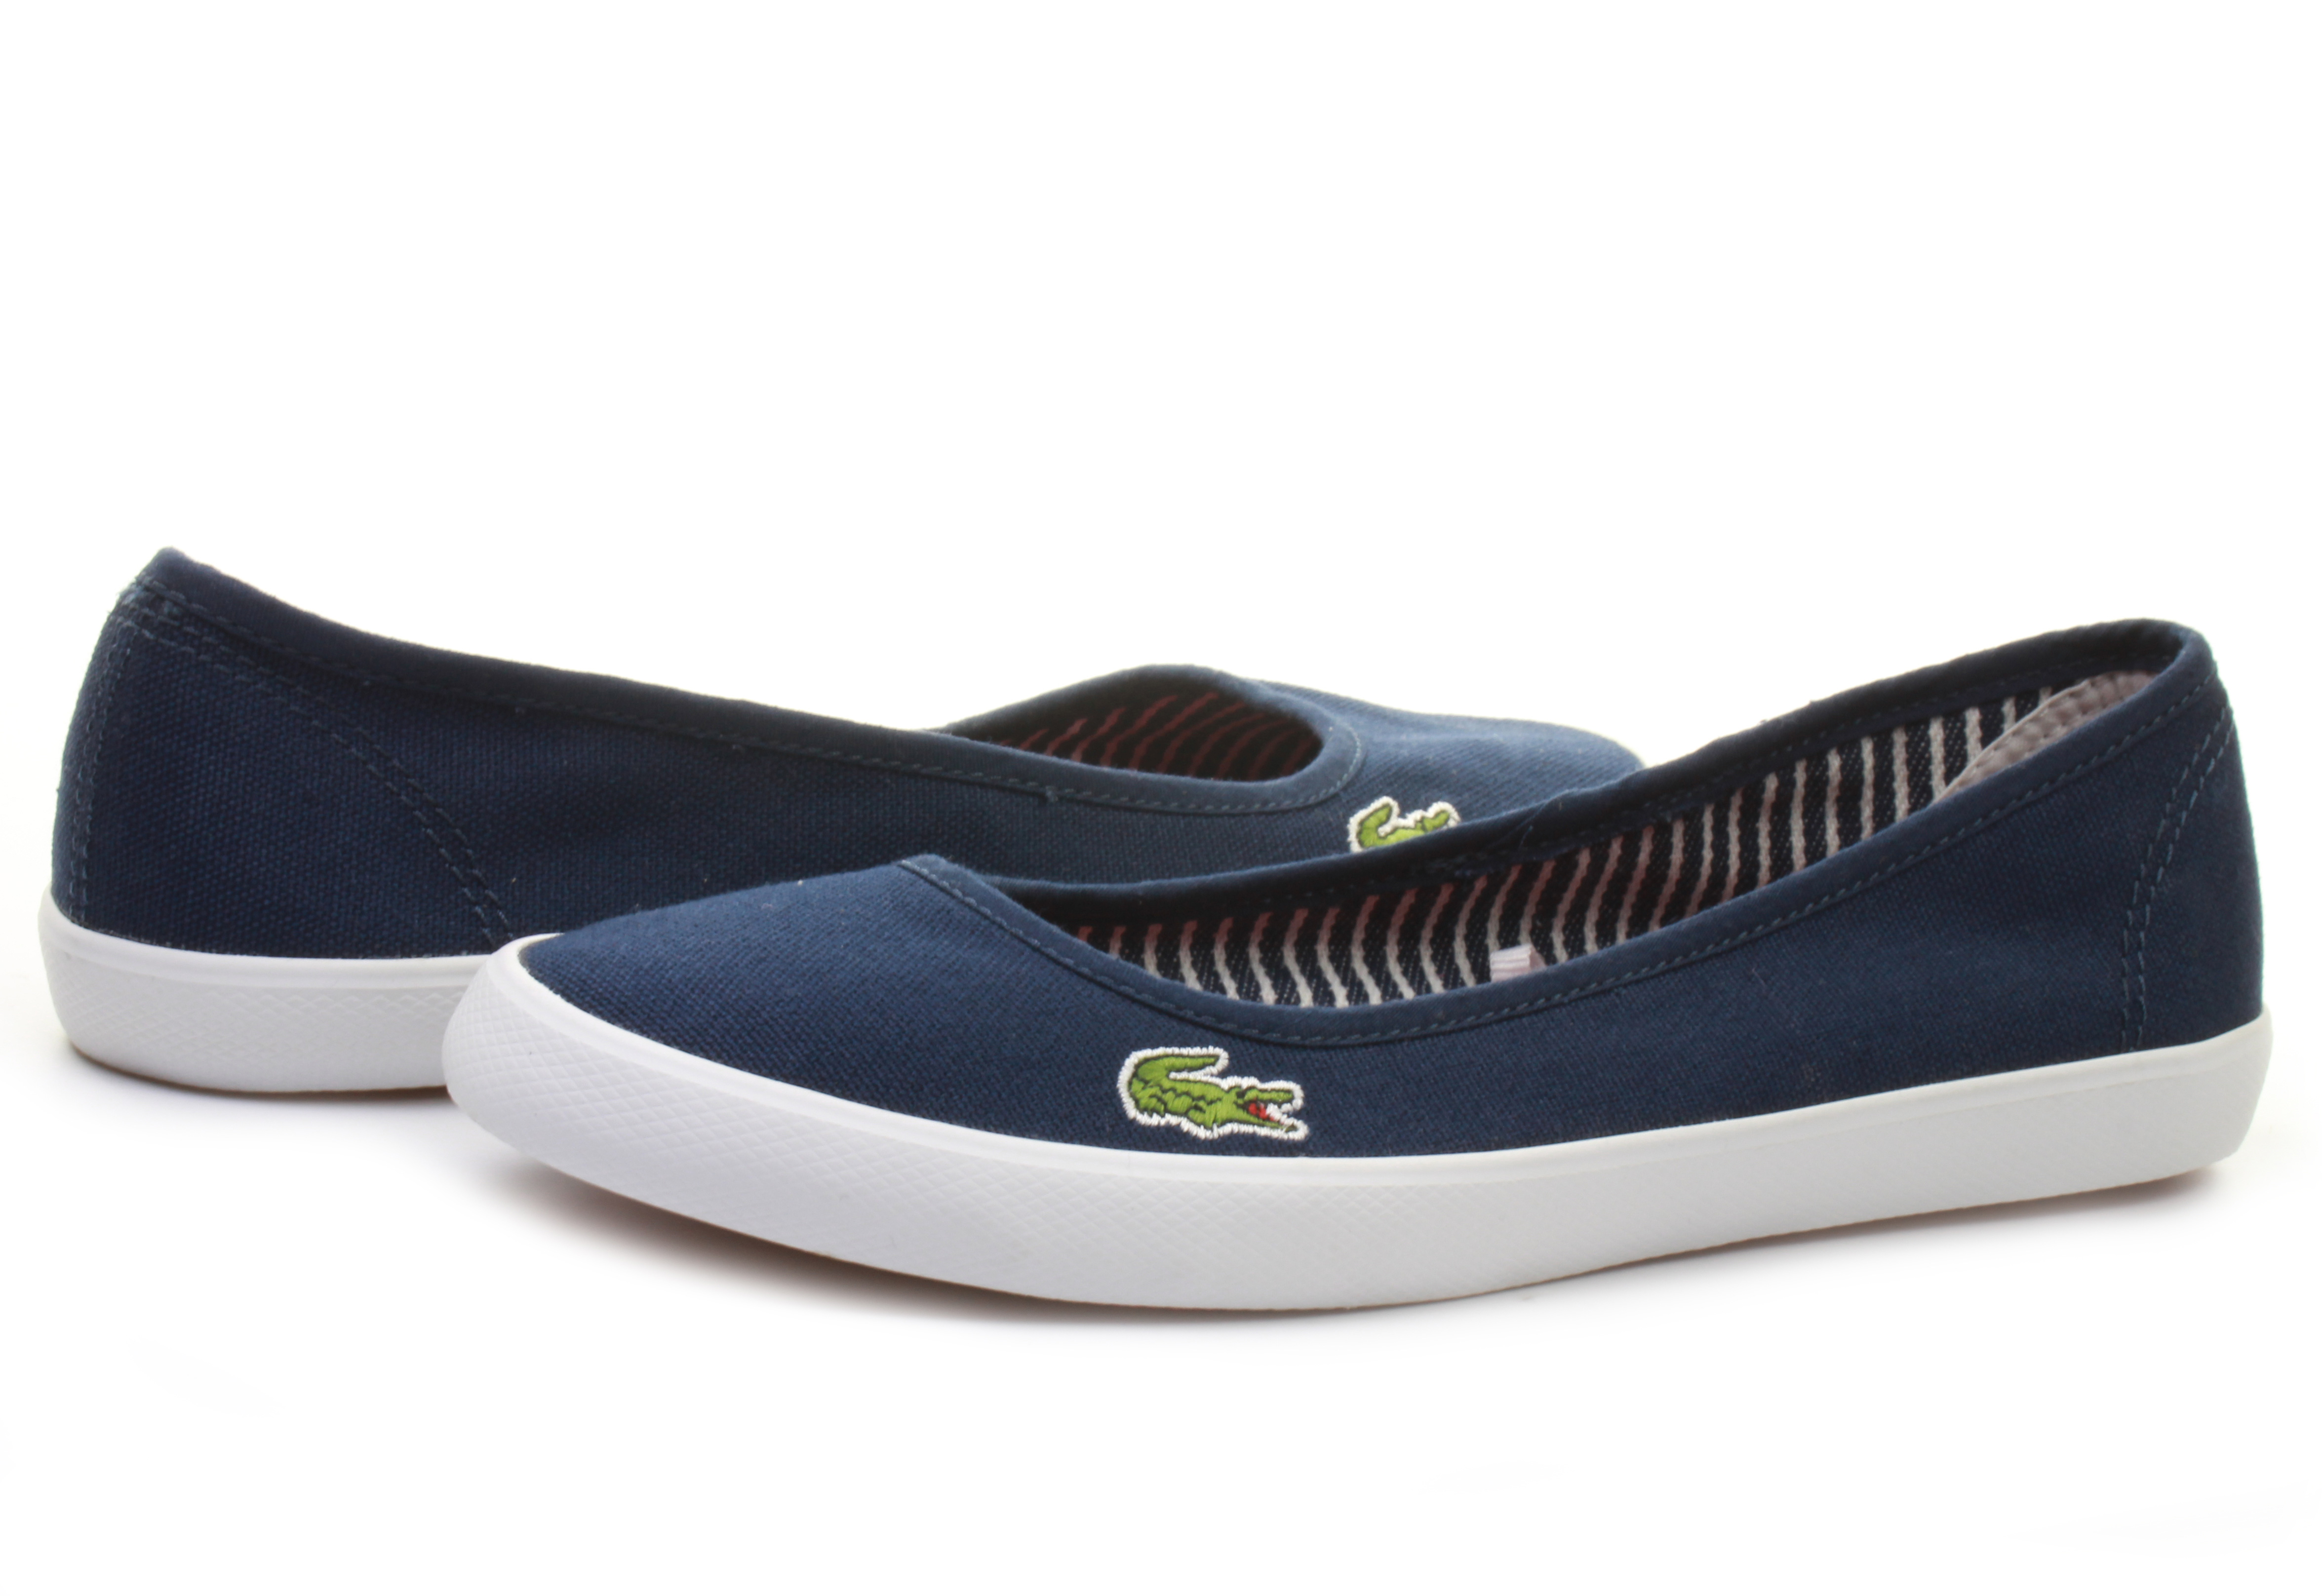 39540dcd95922b Lacoste Ballerinas - Marthe - 141spw0117-db4 - Online shop for ...